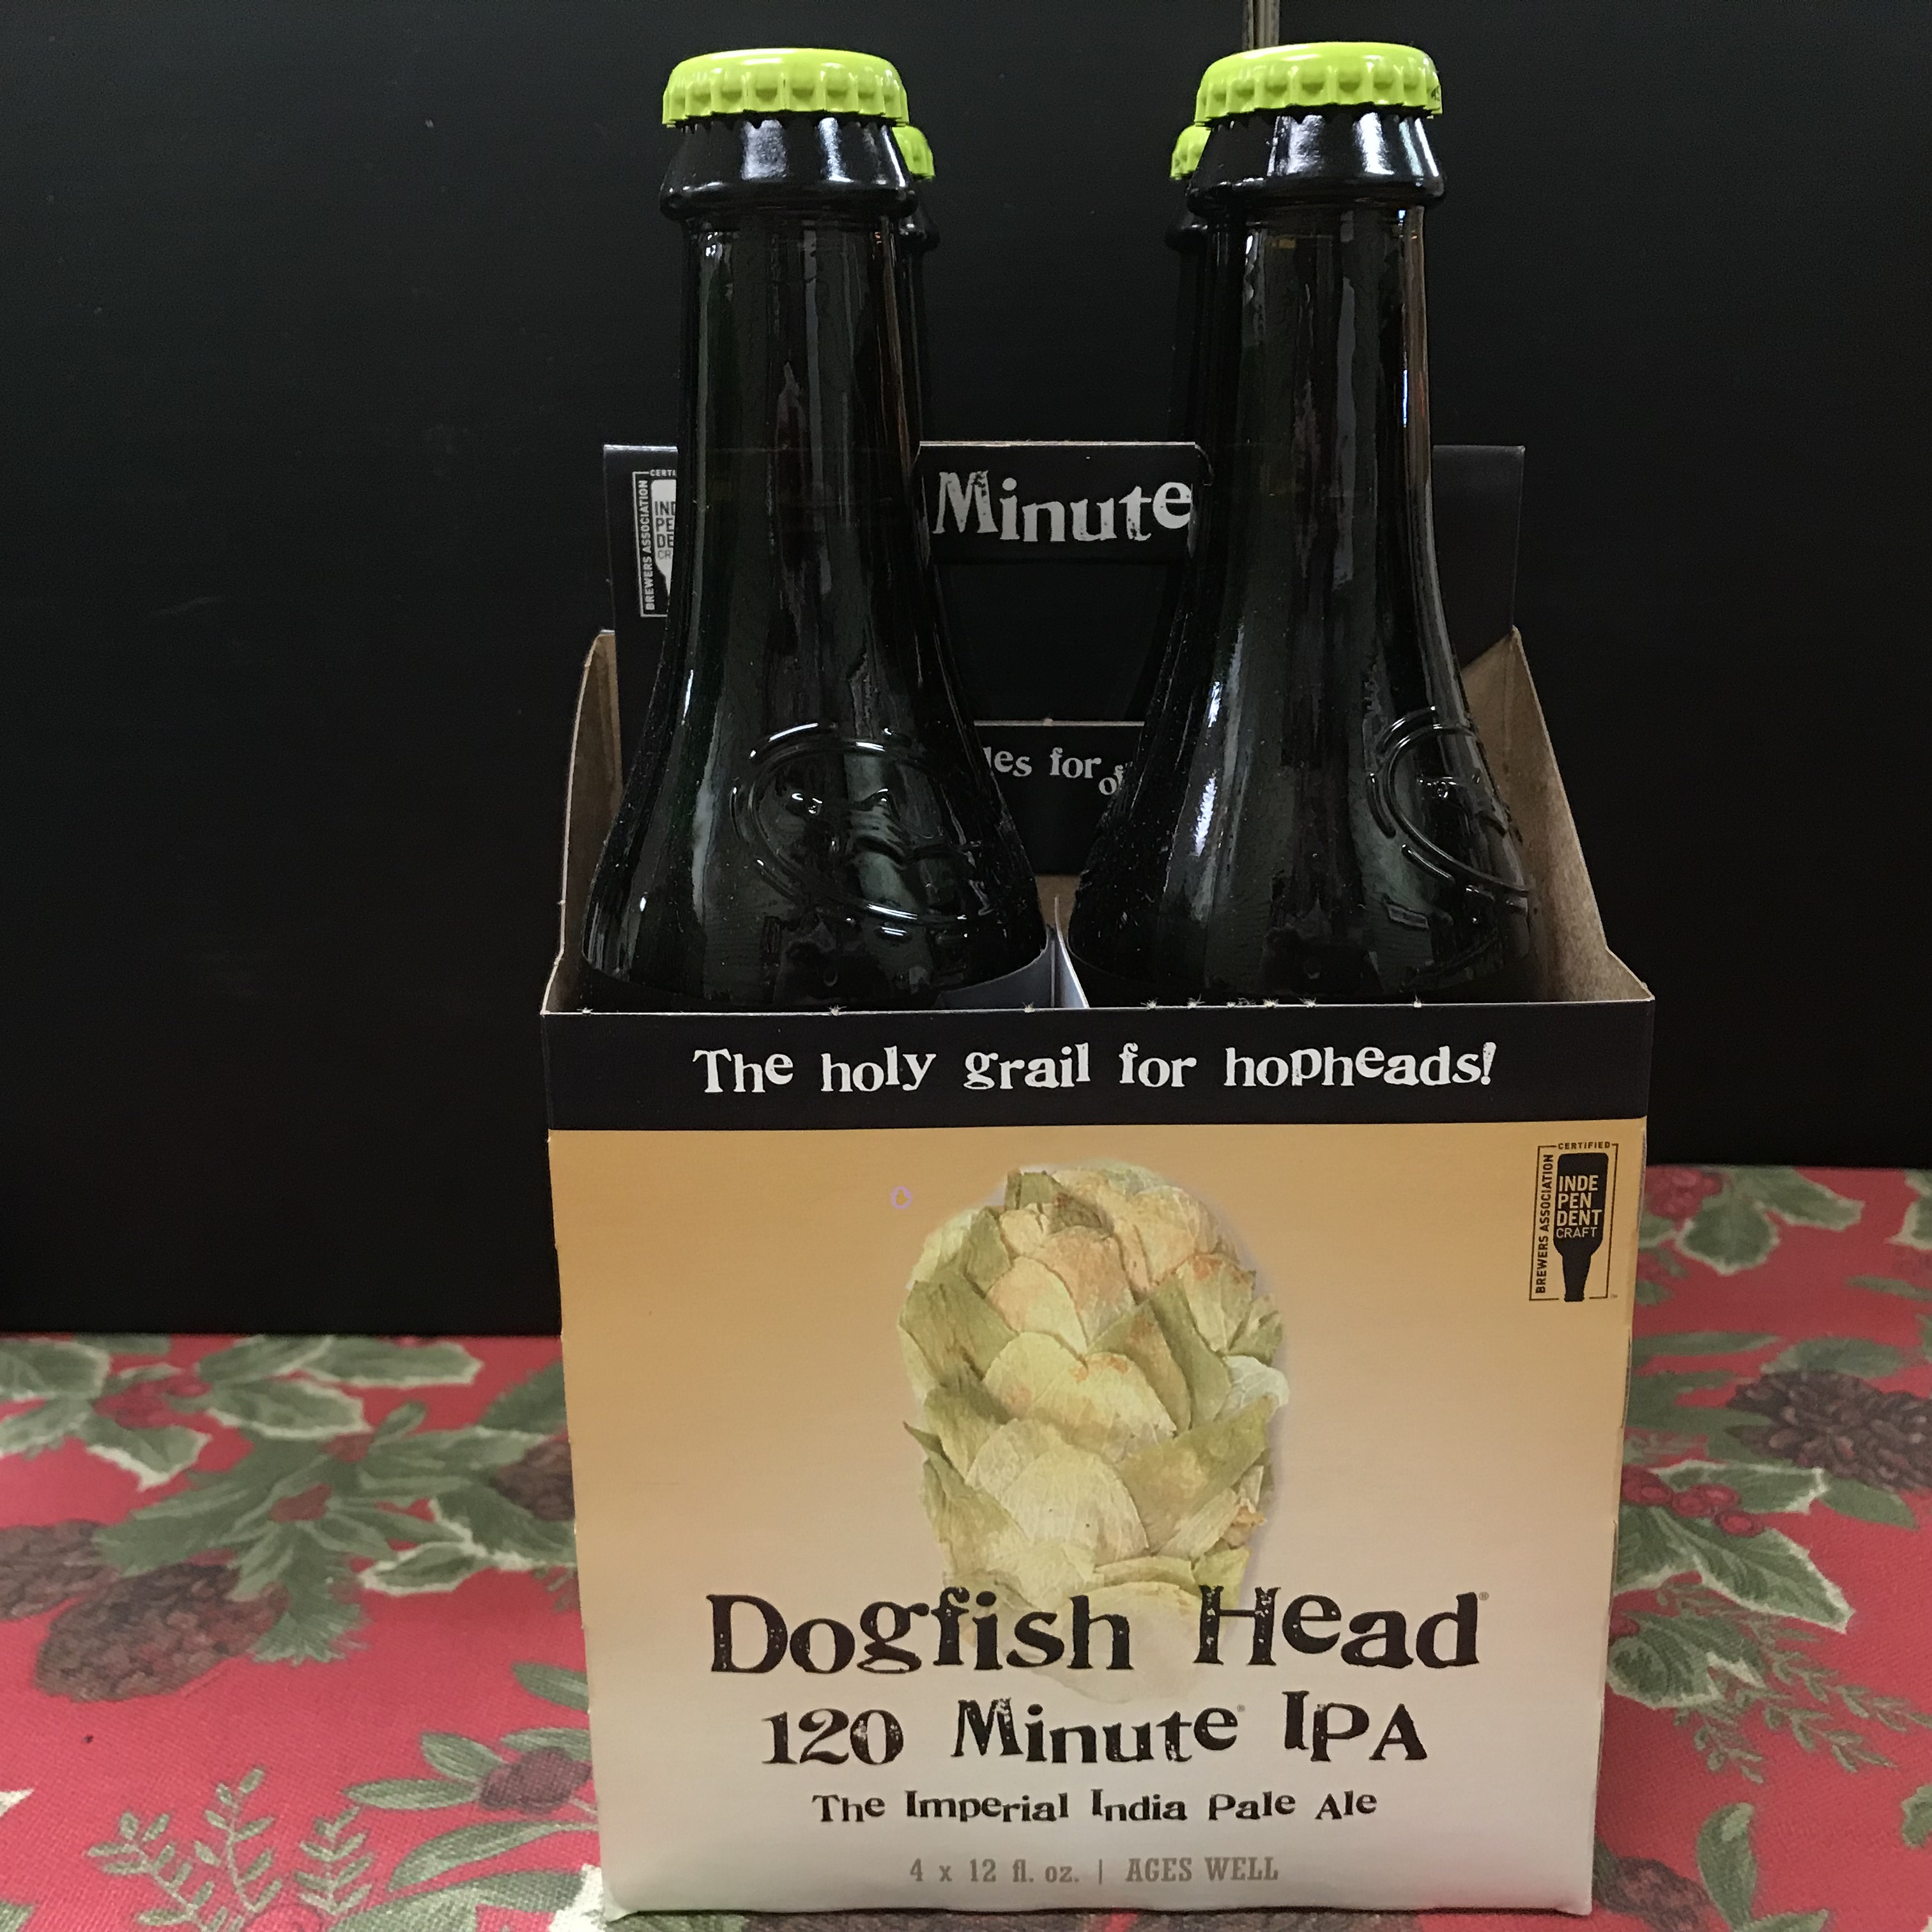 Dogfish Head 120 Minute Imperial IPA 4 x 12oz bottles